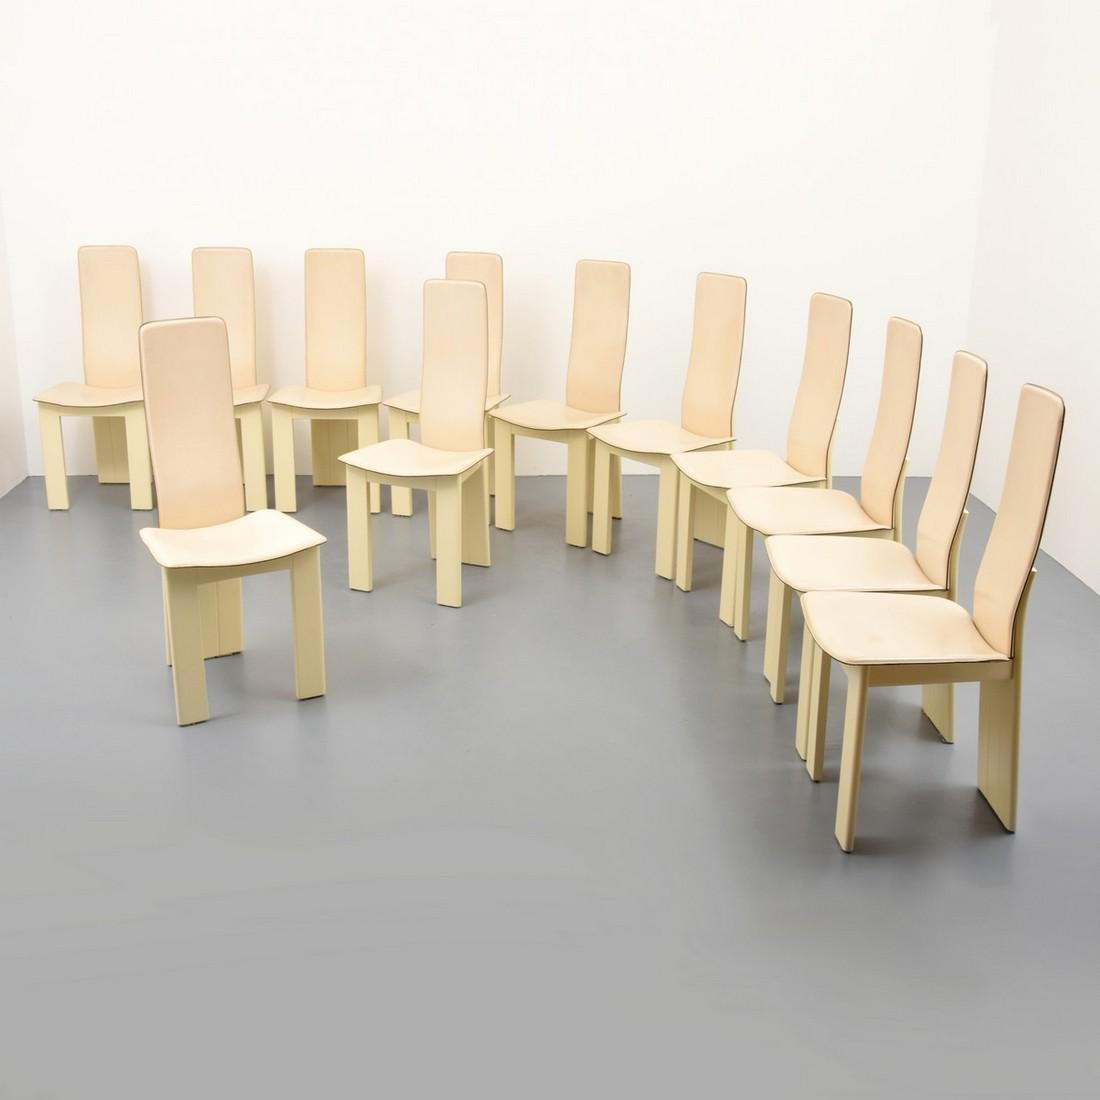 Set of 12 Dining Chairs, Manner of Afra & Tobia Scarpa